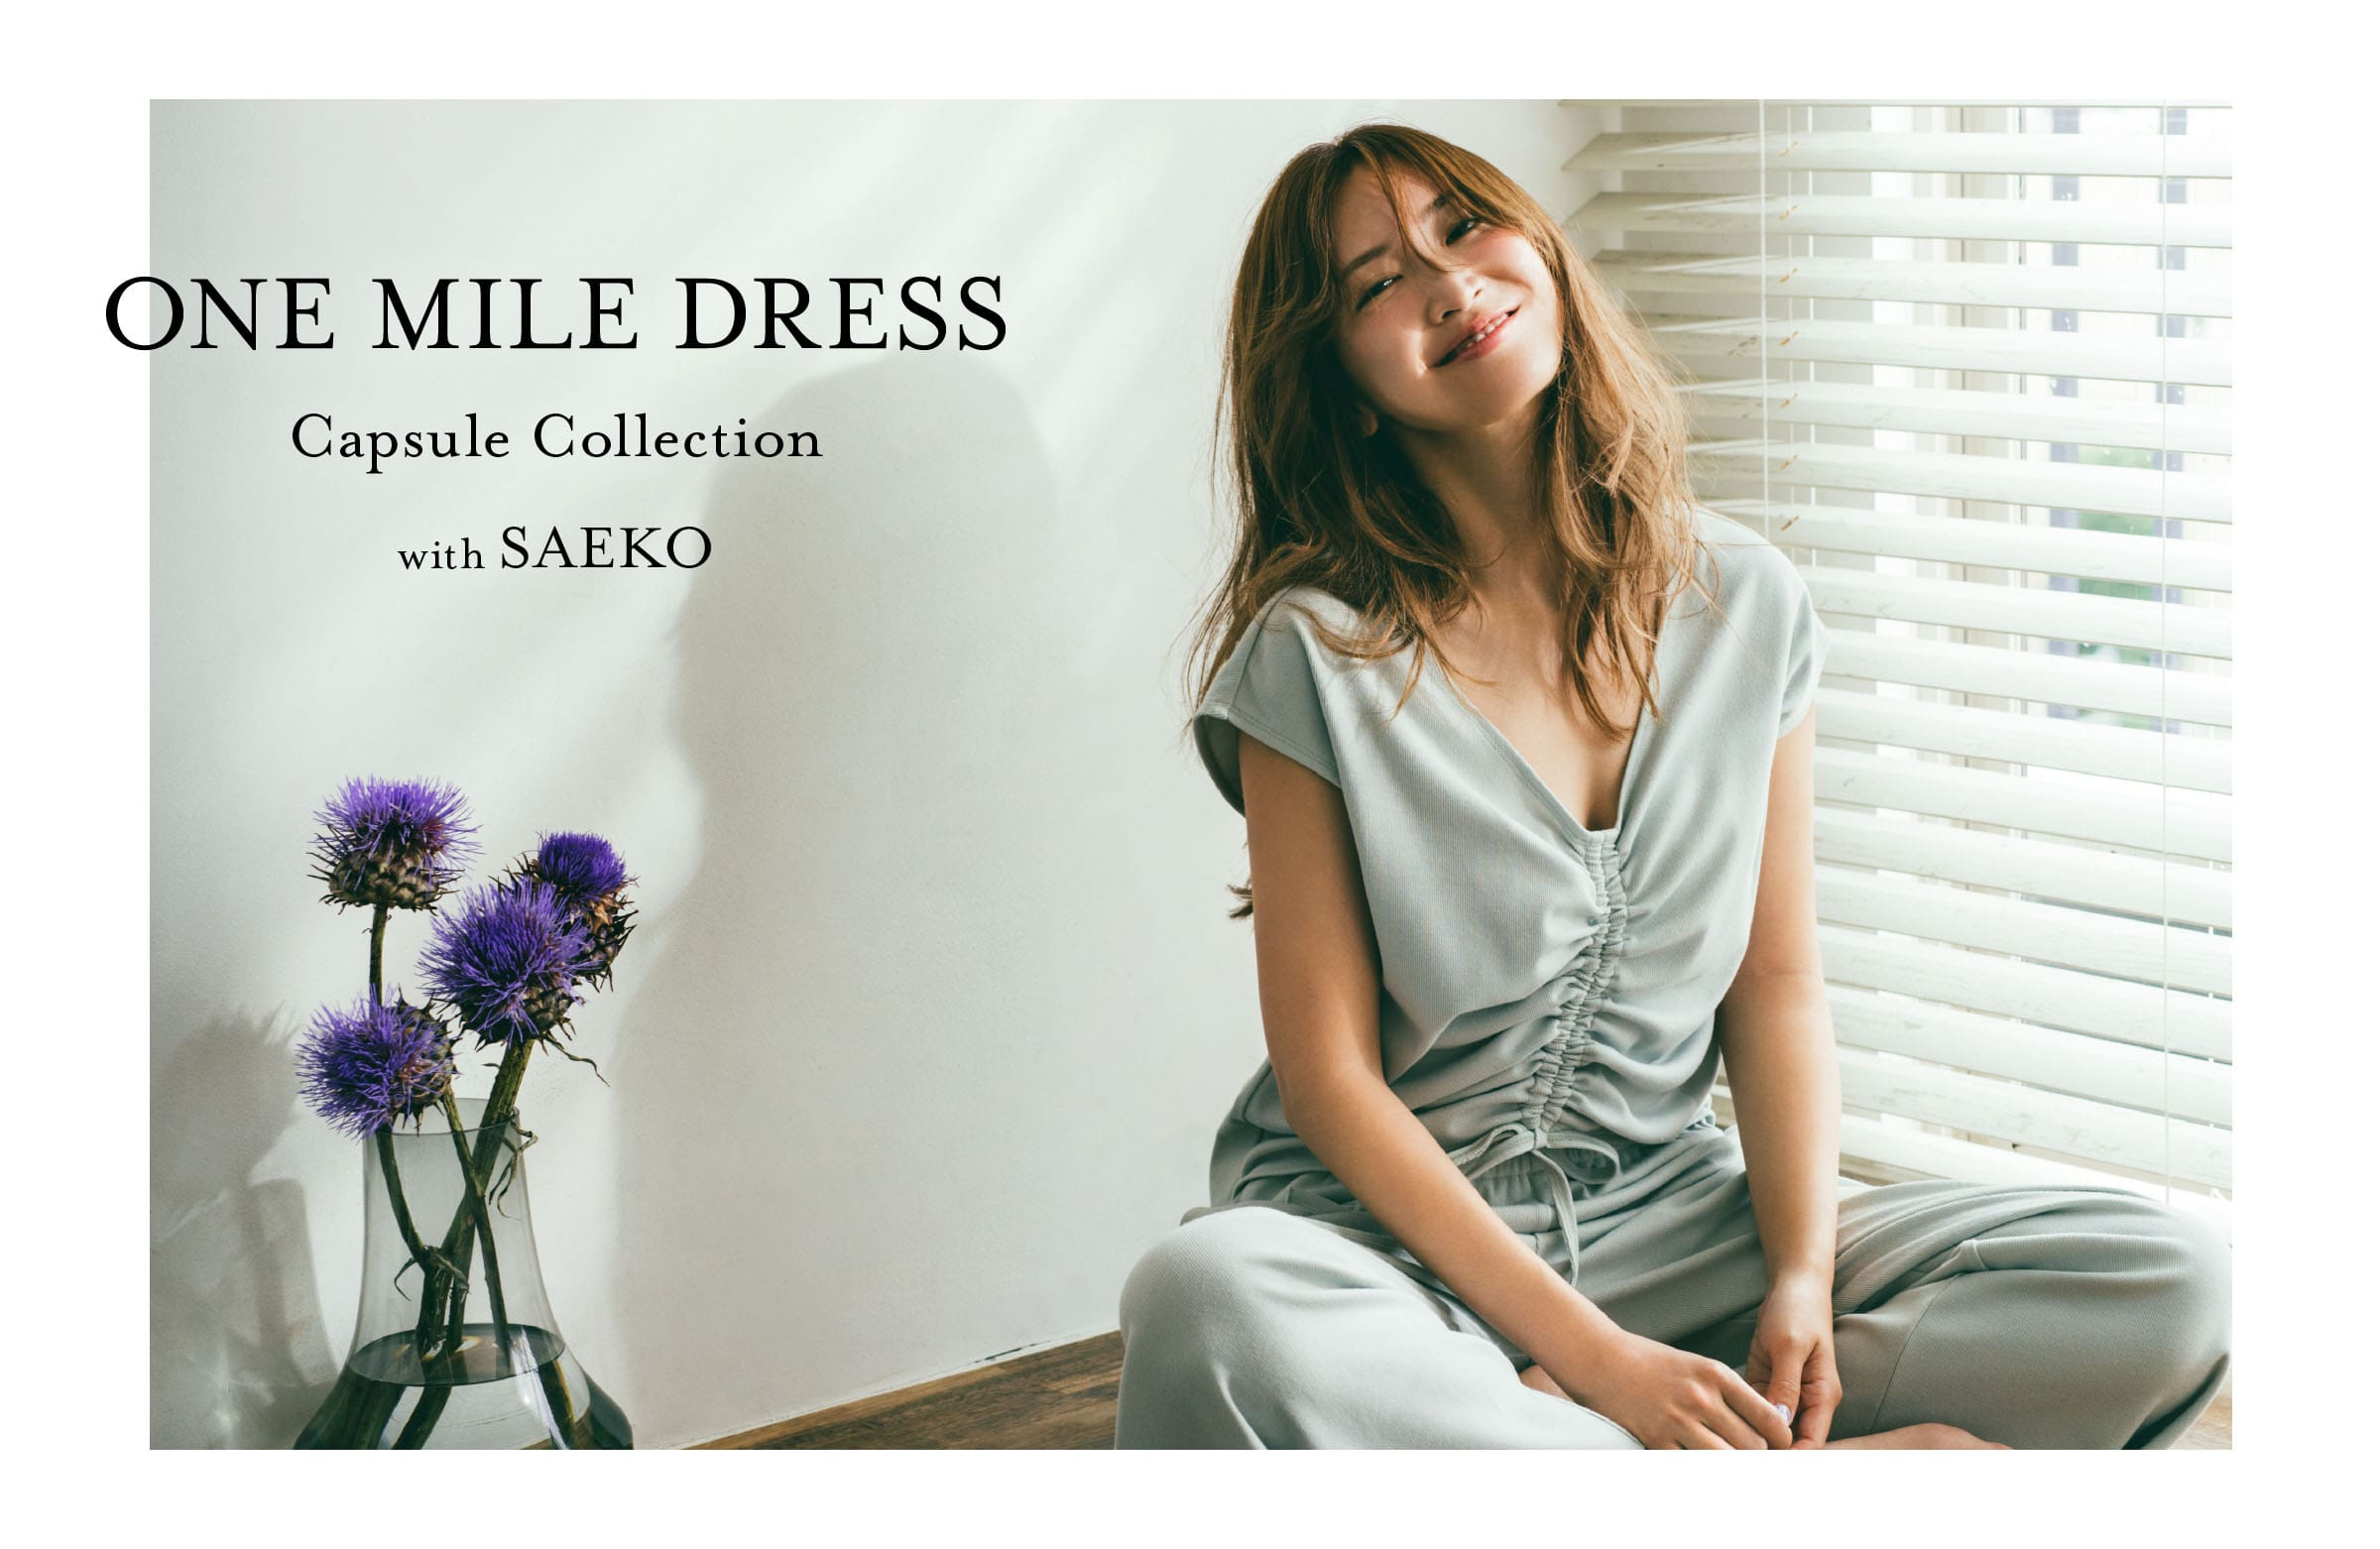 ONE MILE DRESS Capsule Collection with SAEKO